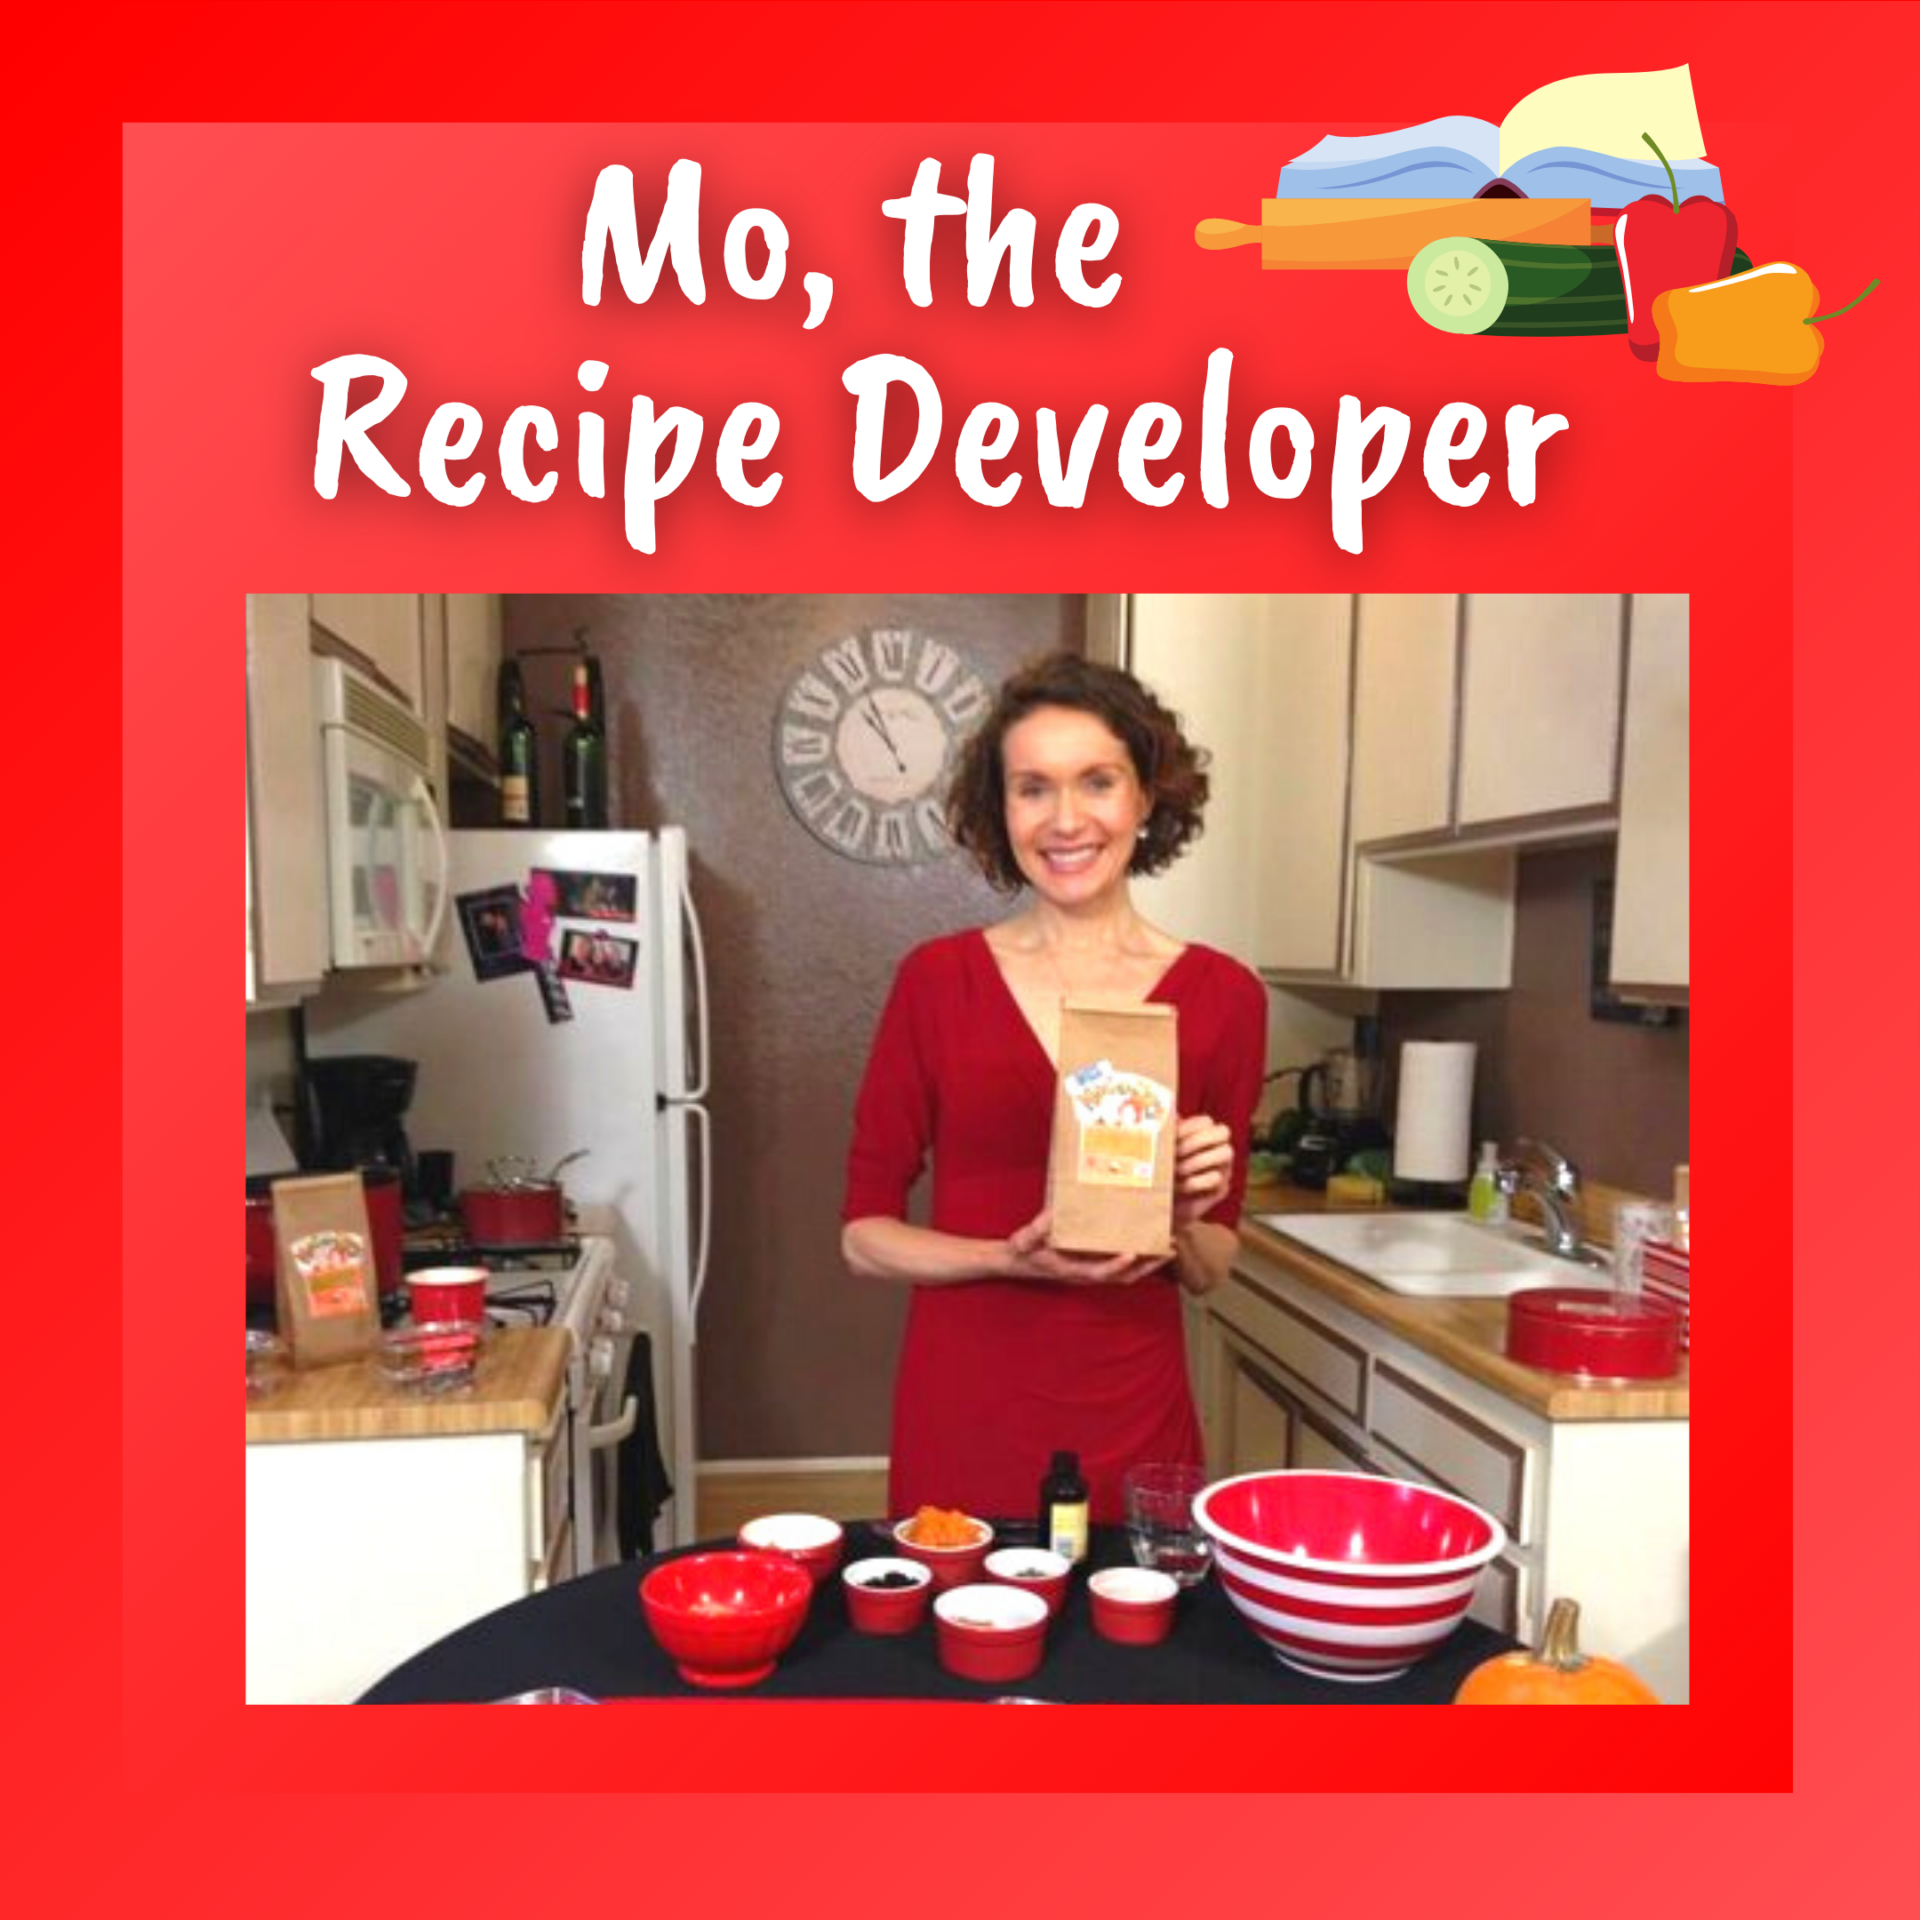 Mo, the Recipe Developer. Mo in the kitchen holding a bag of her Morselicious baking and cooking mix